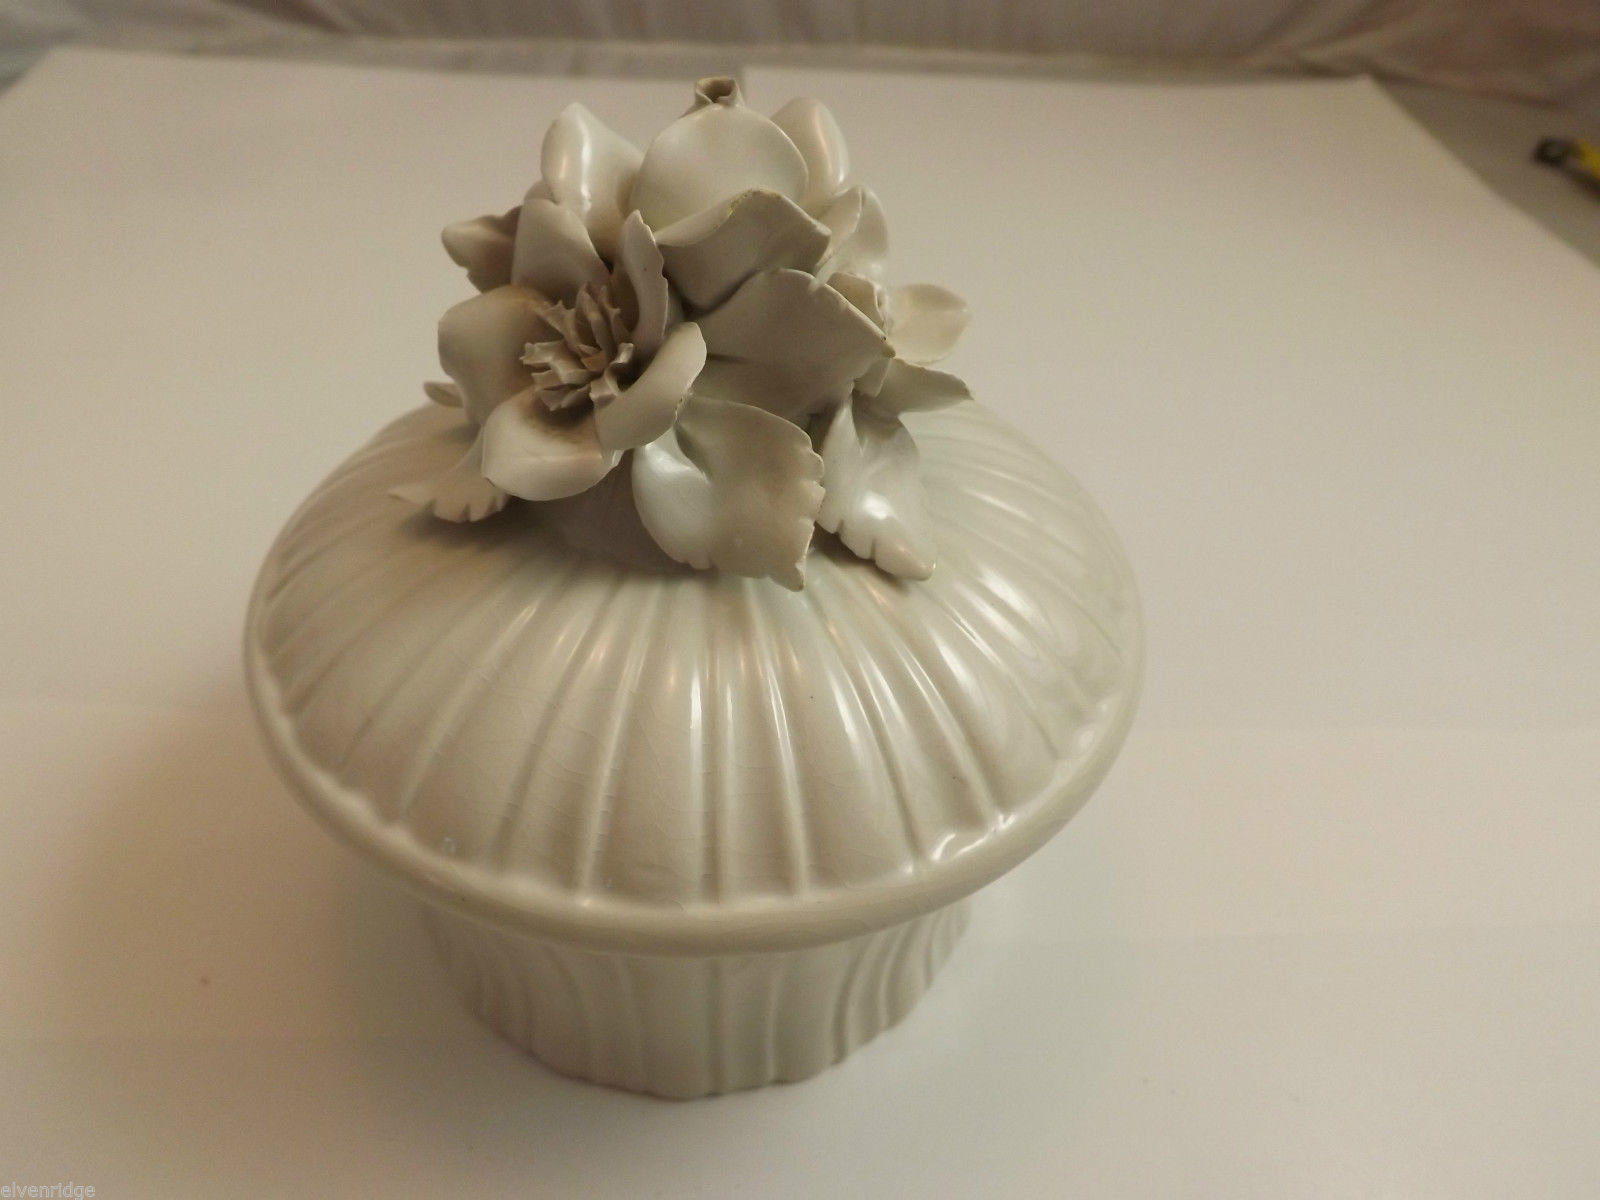 White Porcelain Candy Dish Made in Italy